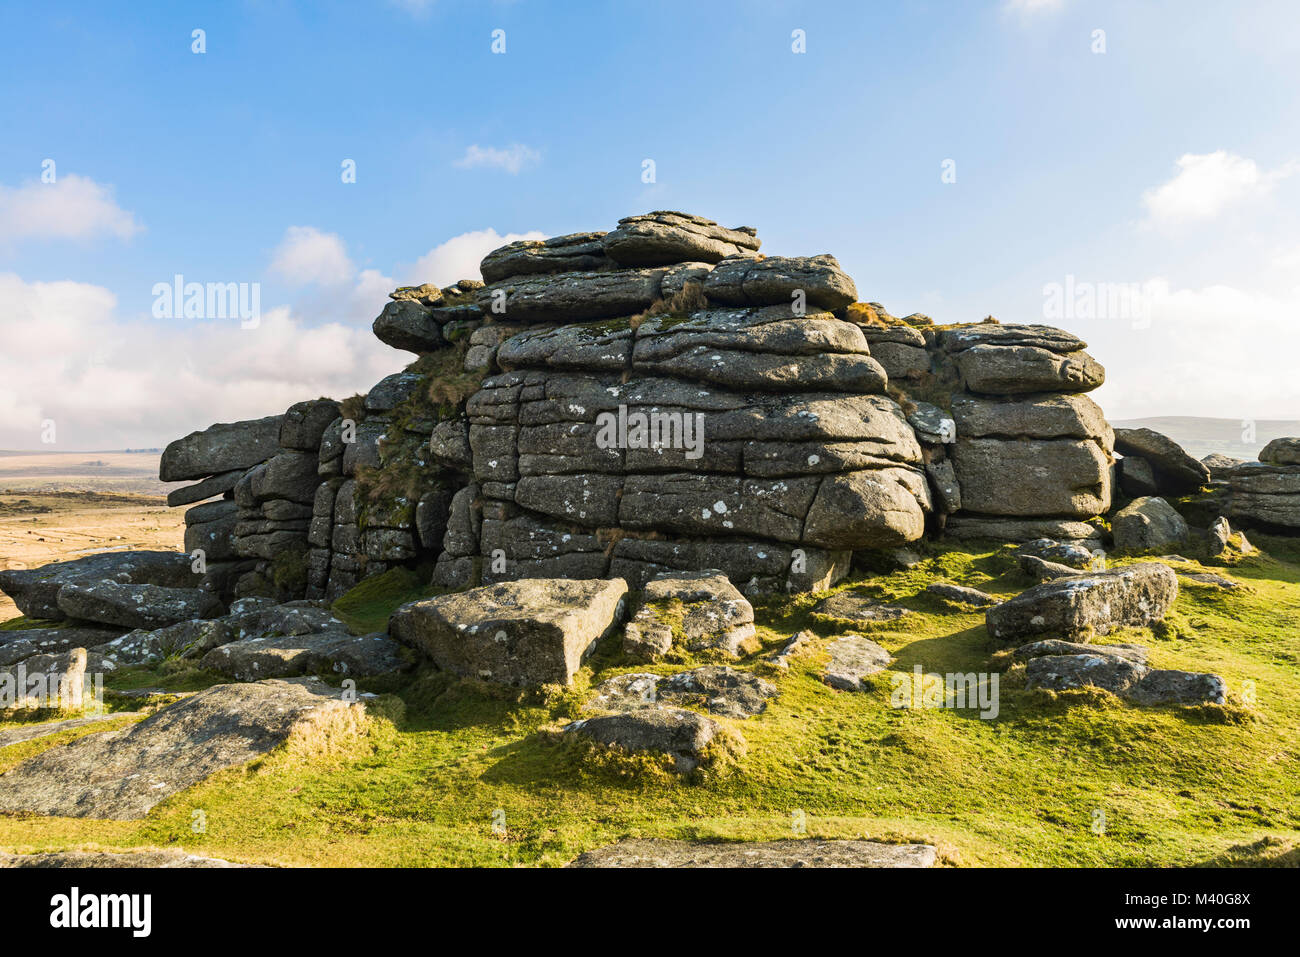 View of the top of Pew Tor in Dartmoor National Park, England, UK. - Stock Image